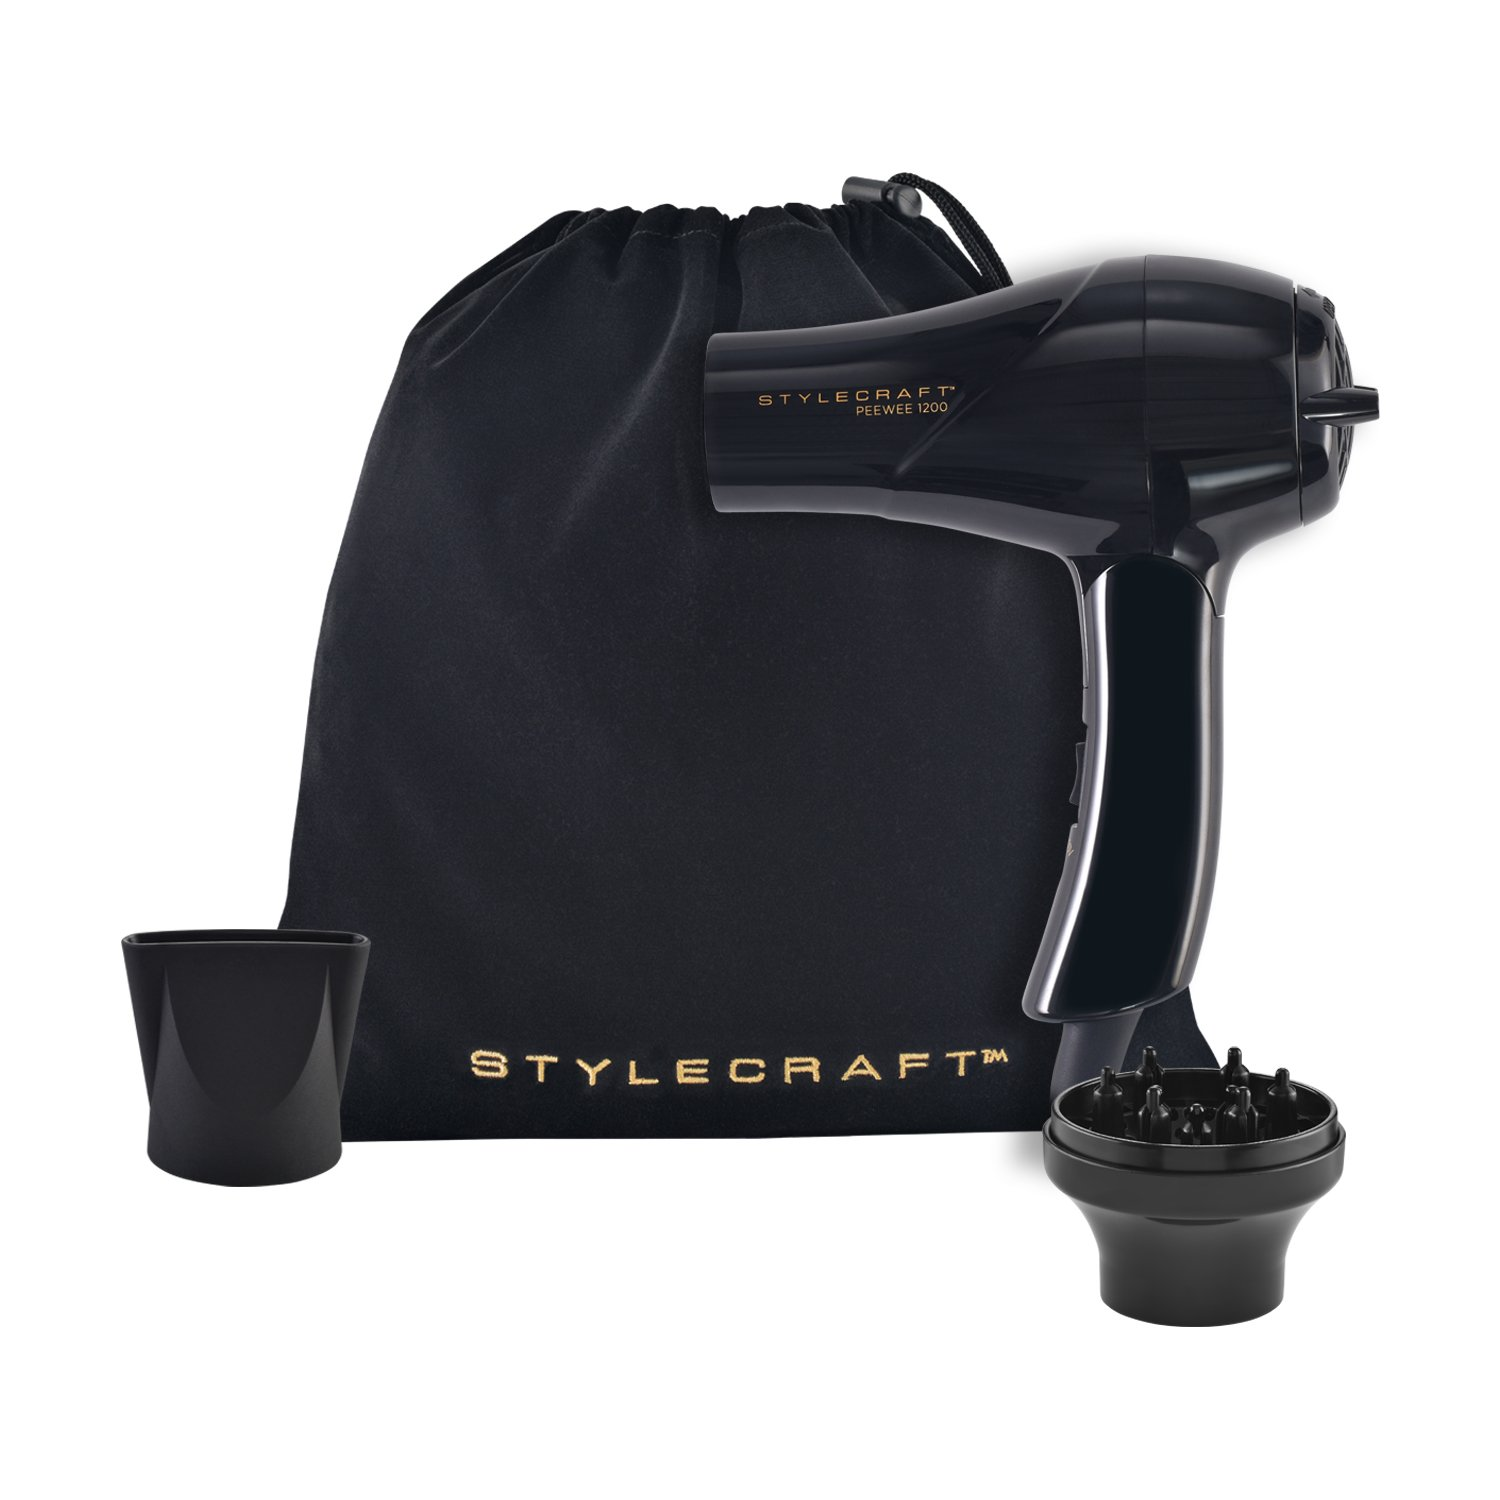 StyleCraft PeeWee 1200 Dual Voltage Folding Handle Travel Dryer | Includes: Travel Bag, Nozzle & Diffuser Black